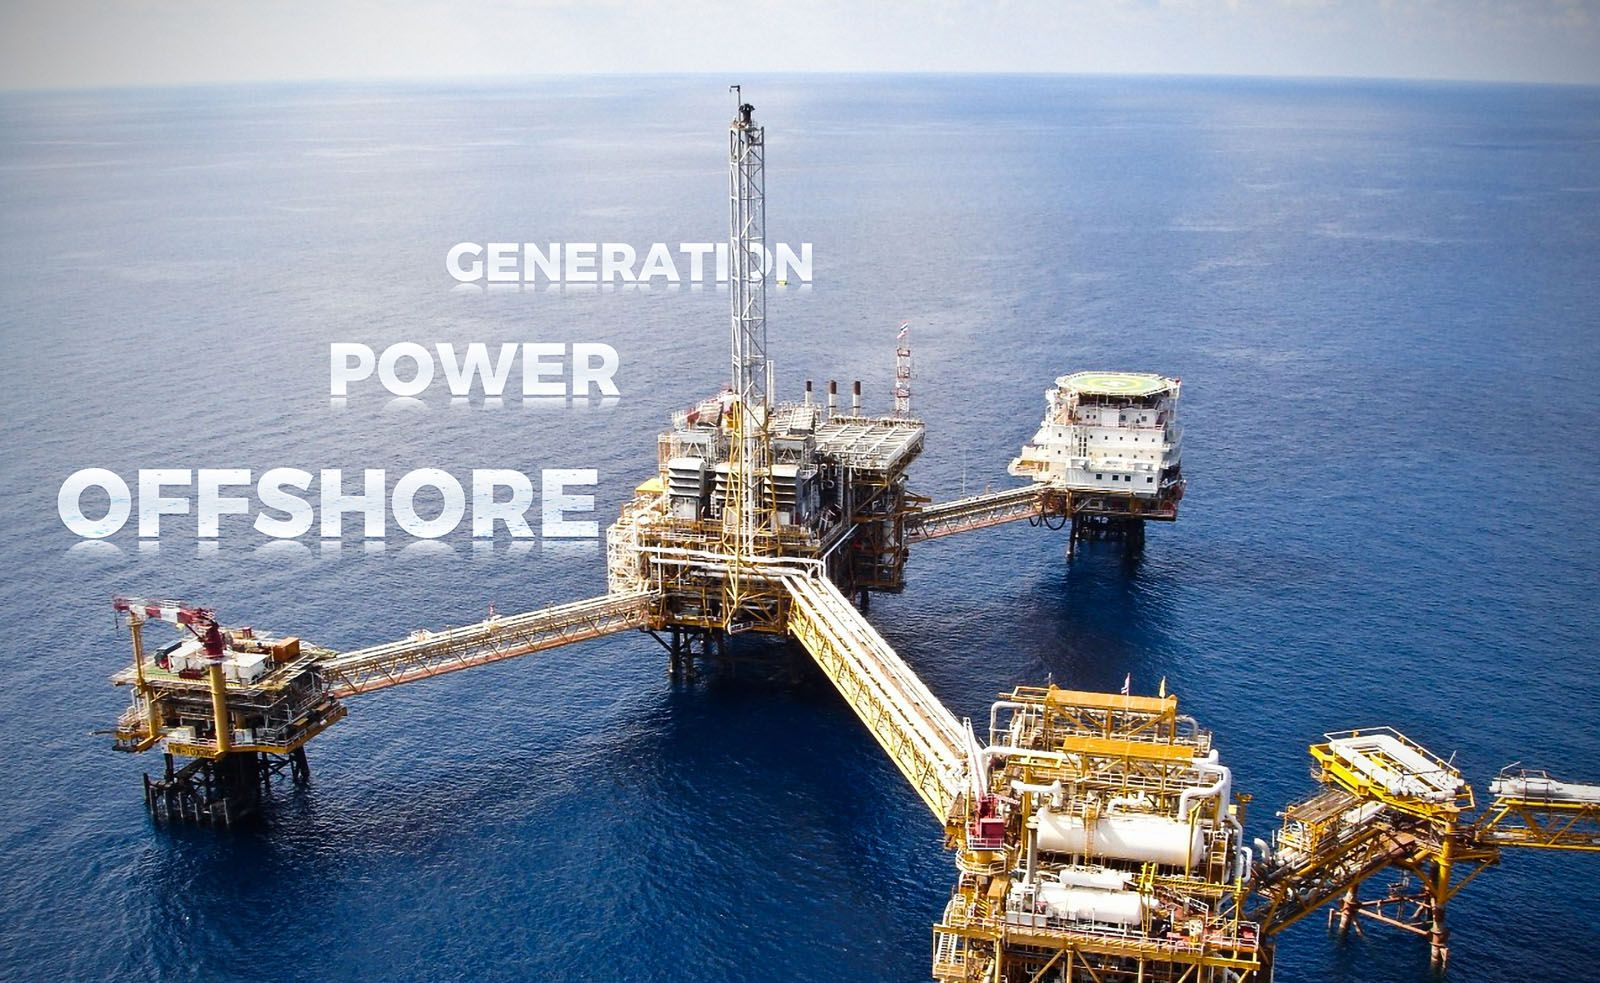 Offshore Power Generation